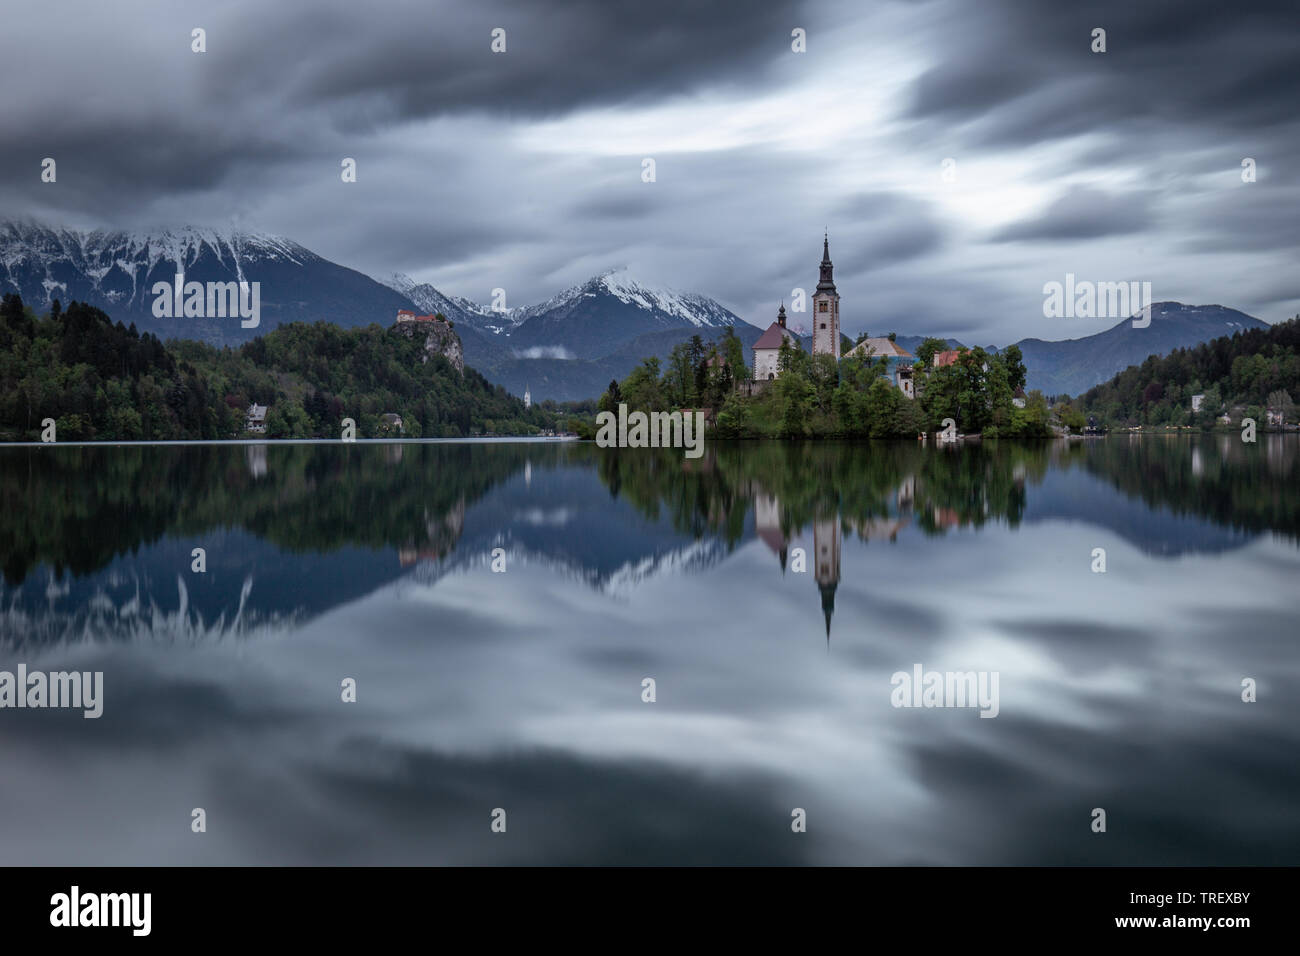 Dramatic sky with moving clouds over Assumtion of Mary church on island at Lake Bled, Slovenia. Long time exposure view of church and castle Bled refl Stock Photo